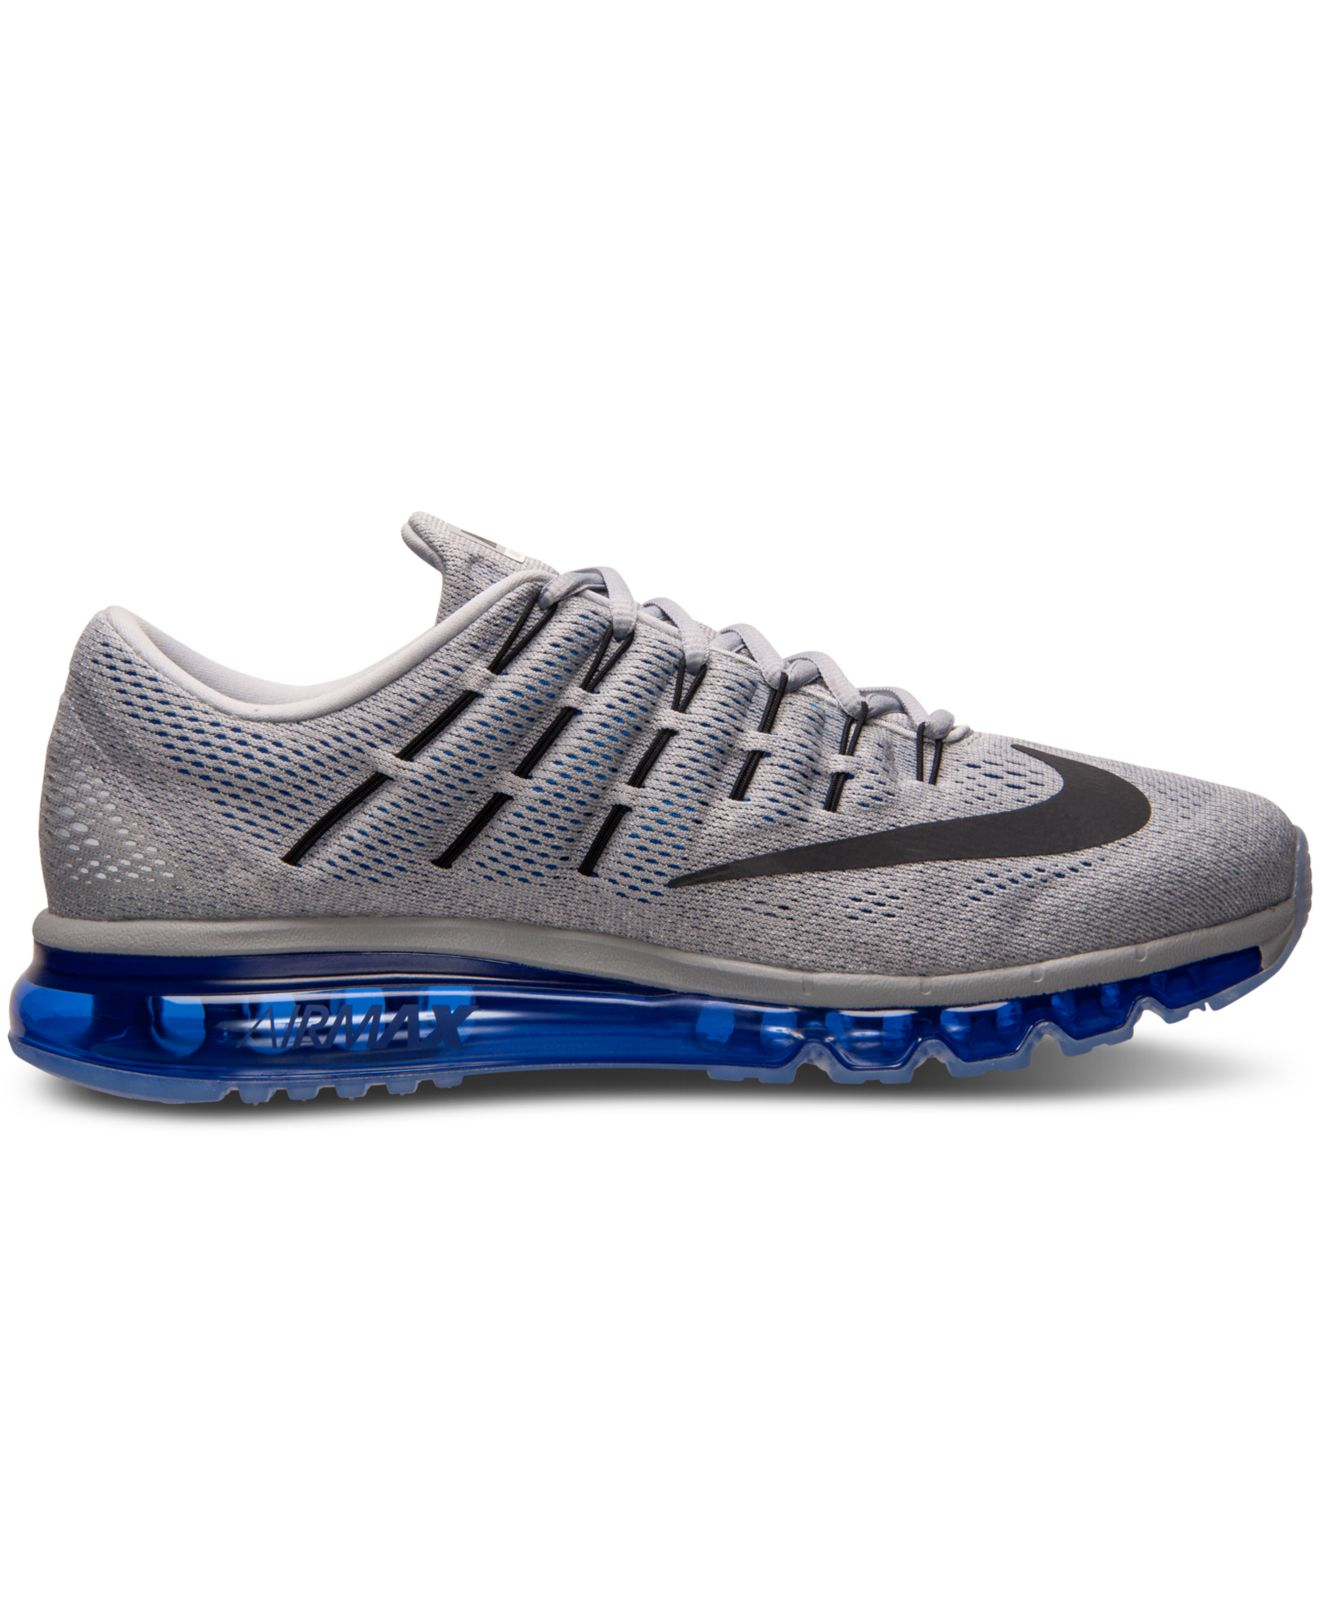 check out 8a592 ffa74 nike air max 2016 finish line